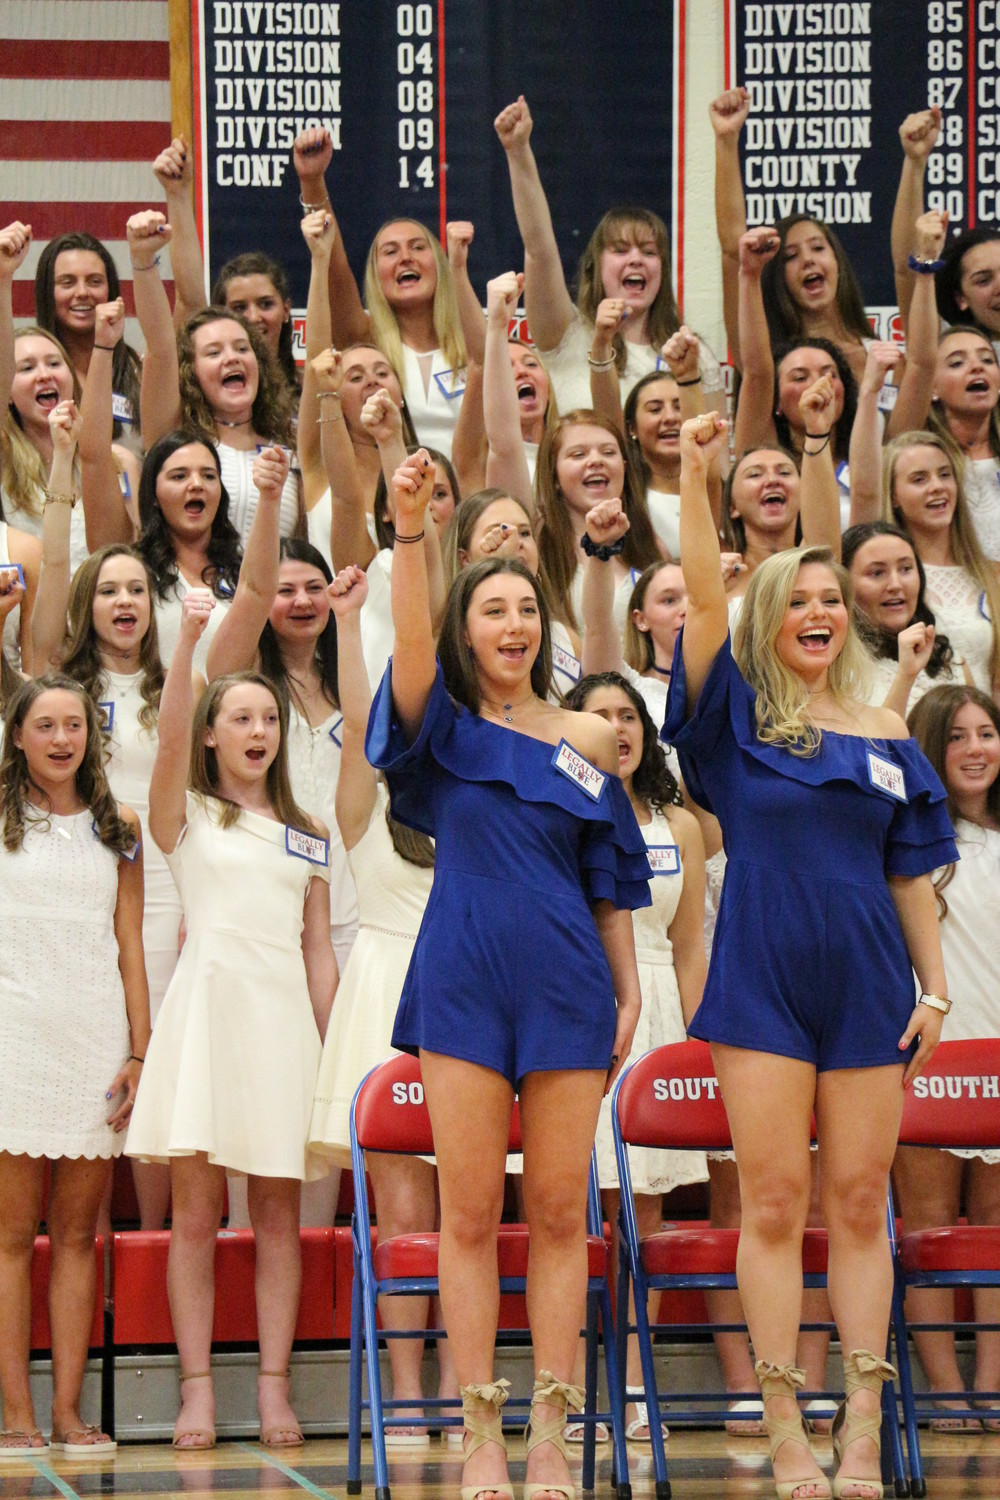 Blue captains Zoe Roman, left, and Katie Rosshirt led their team in a song.